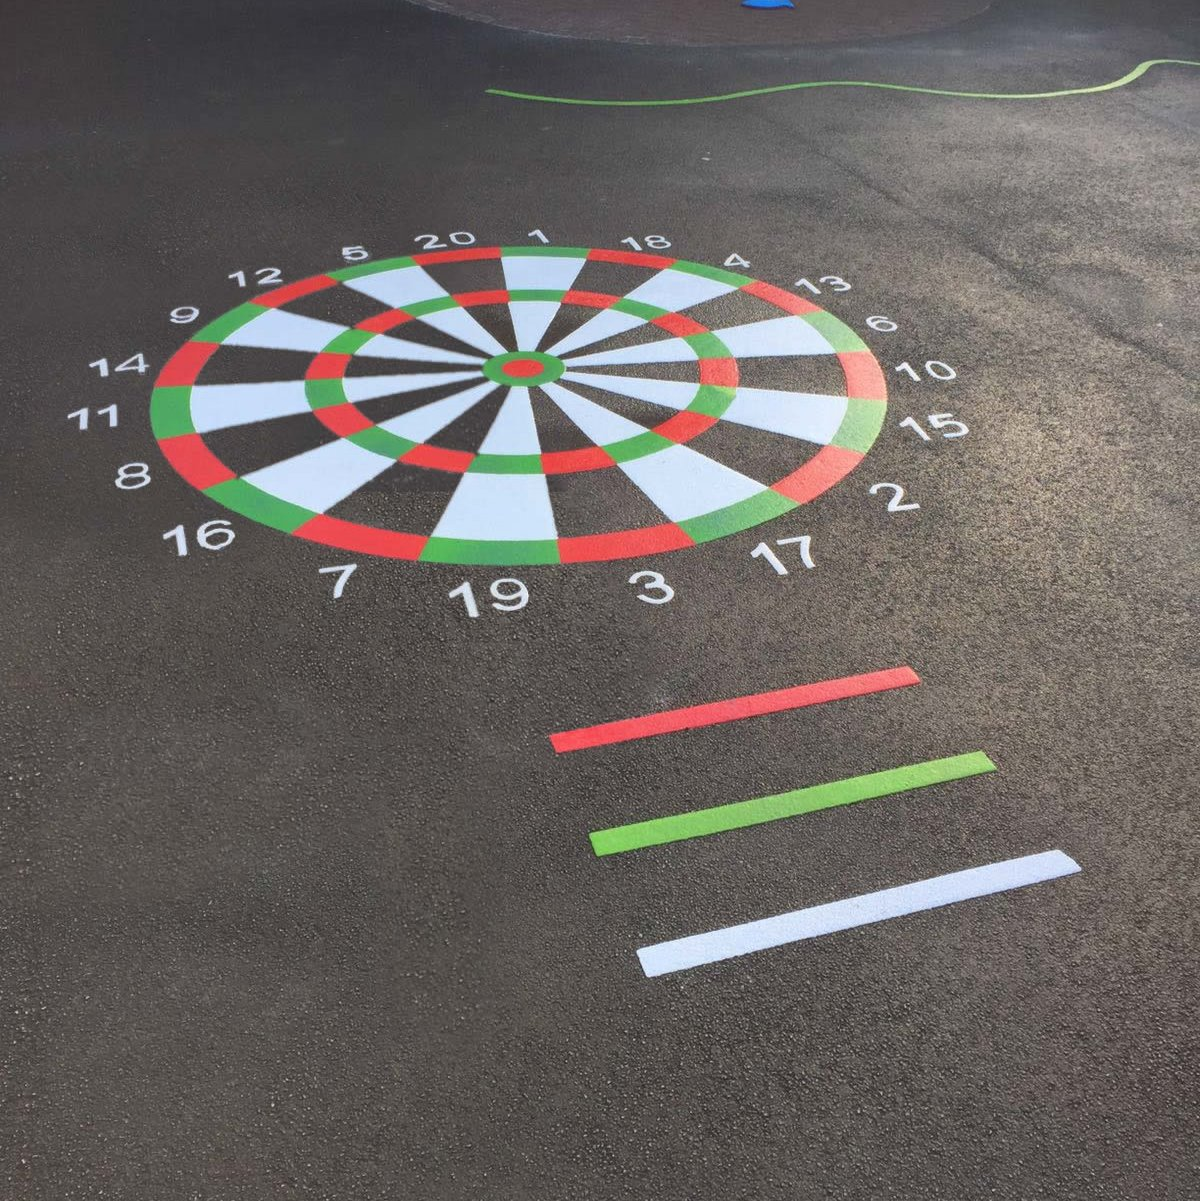 dartboard-playground-marking-1